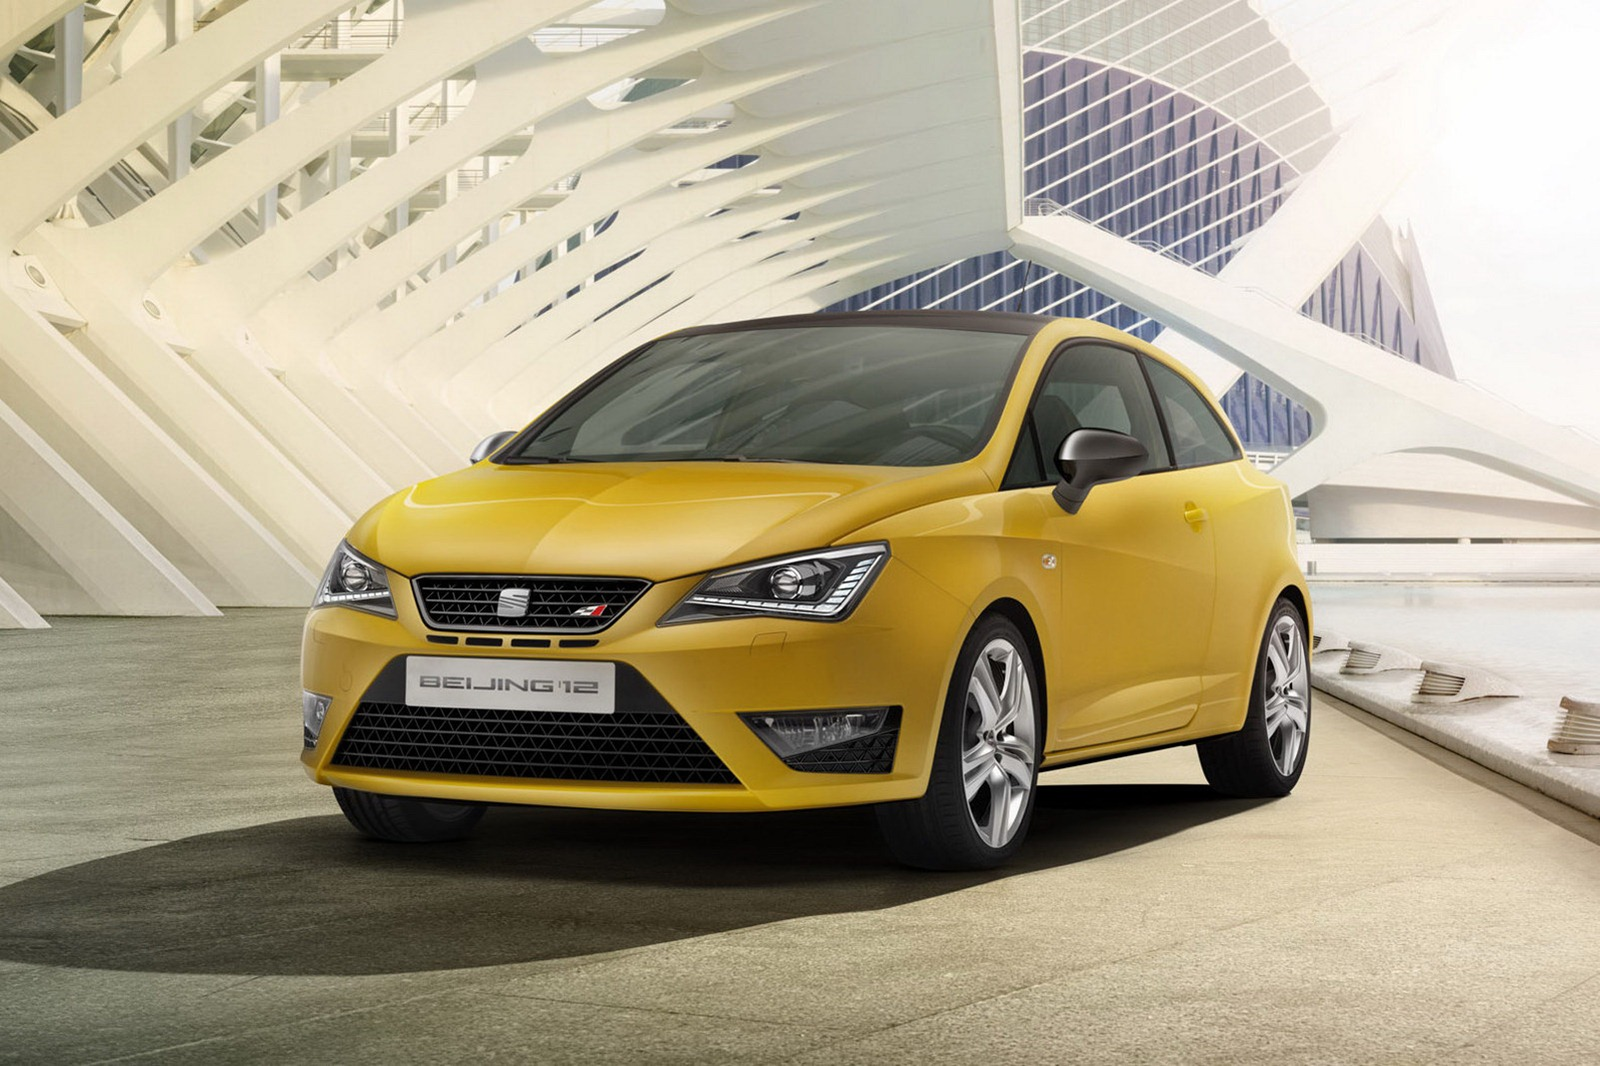 2012 Seat Ibiza Cupra Facelift 1 2012 Seat Ibiza Cupra Facelift   More Dashing